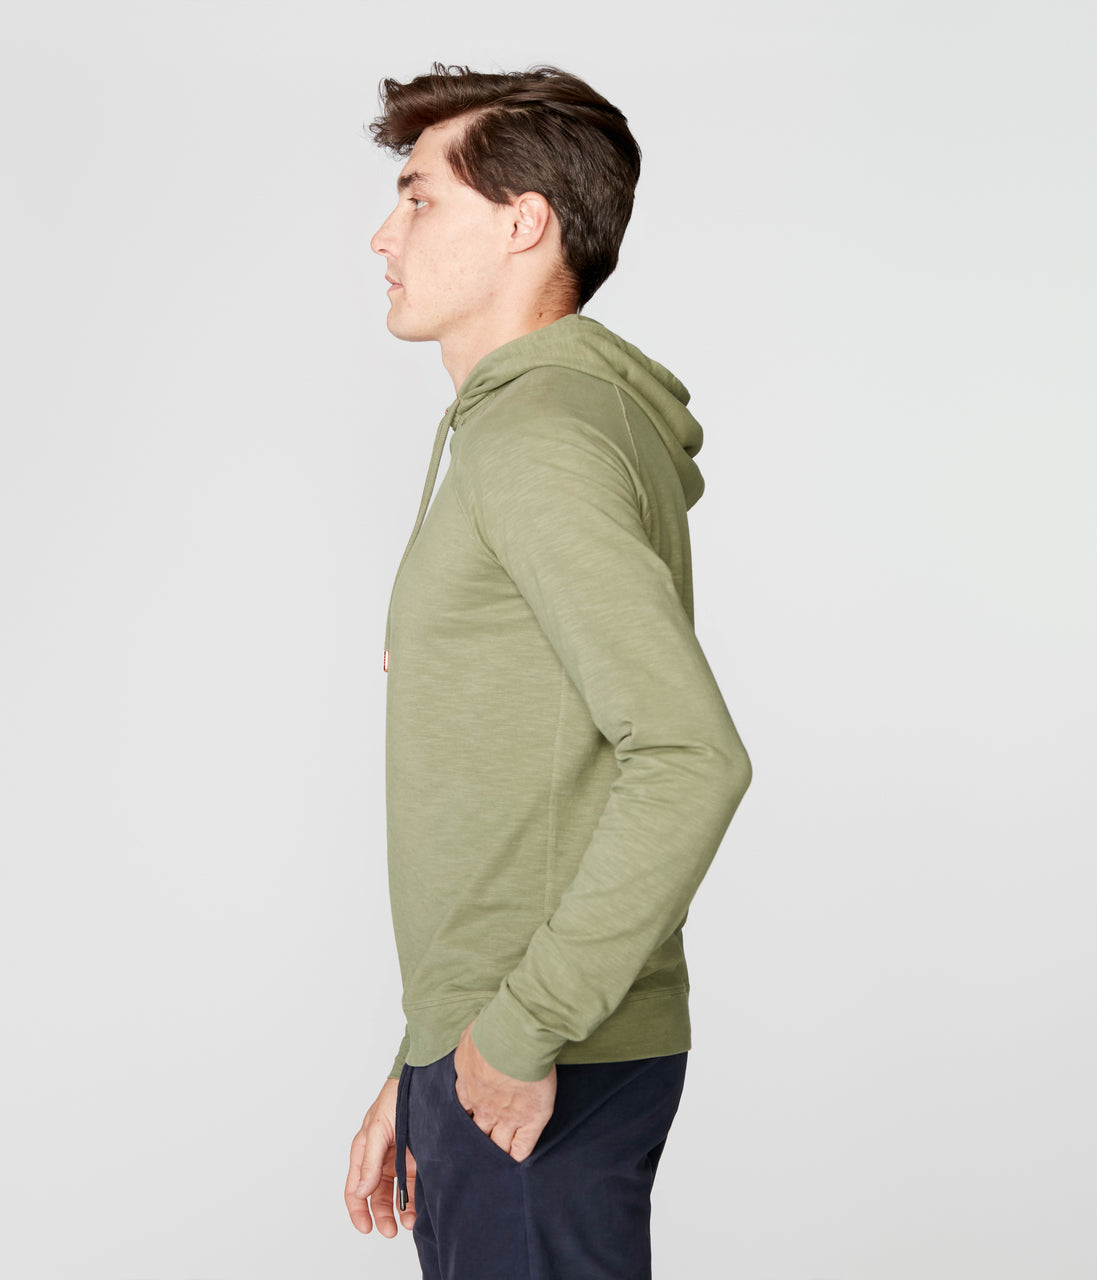 Legend Hoodie in Soft Slub Jersey - Clover - Good Man Brand - Legend Hoodie in Soft Slub Jersey - Clover